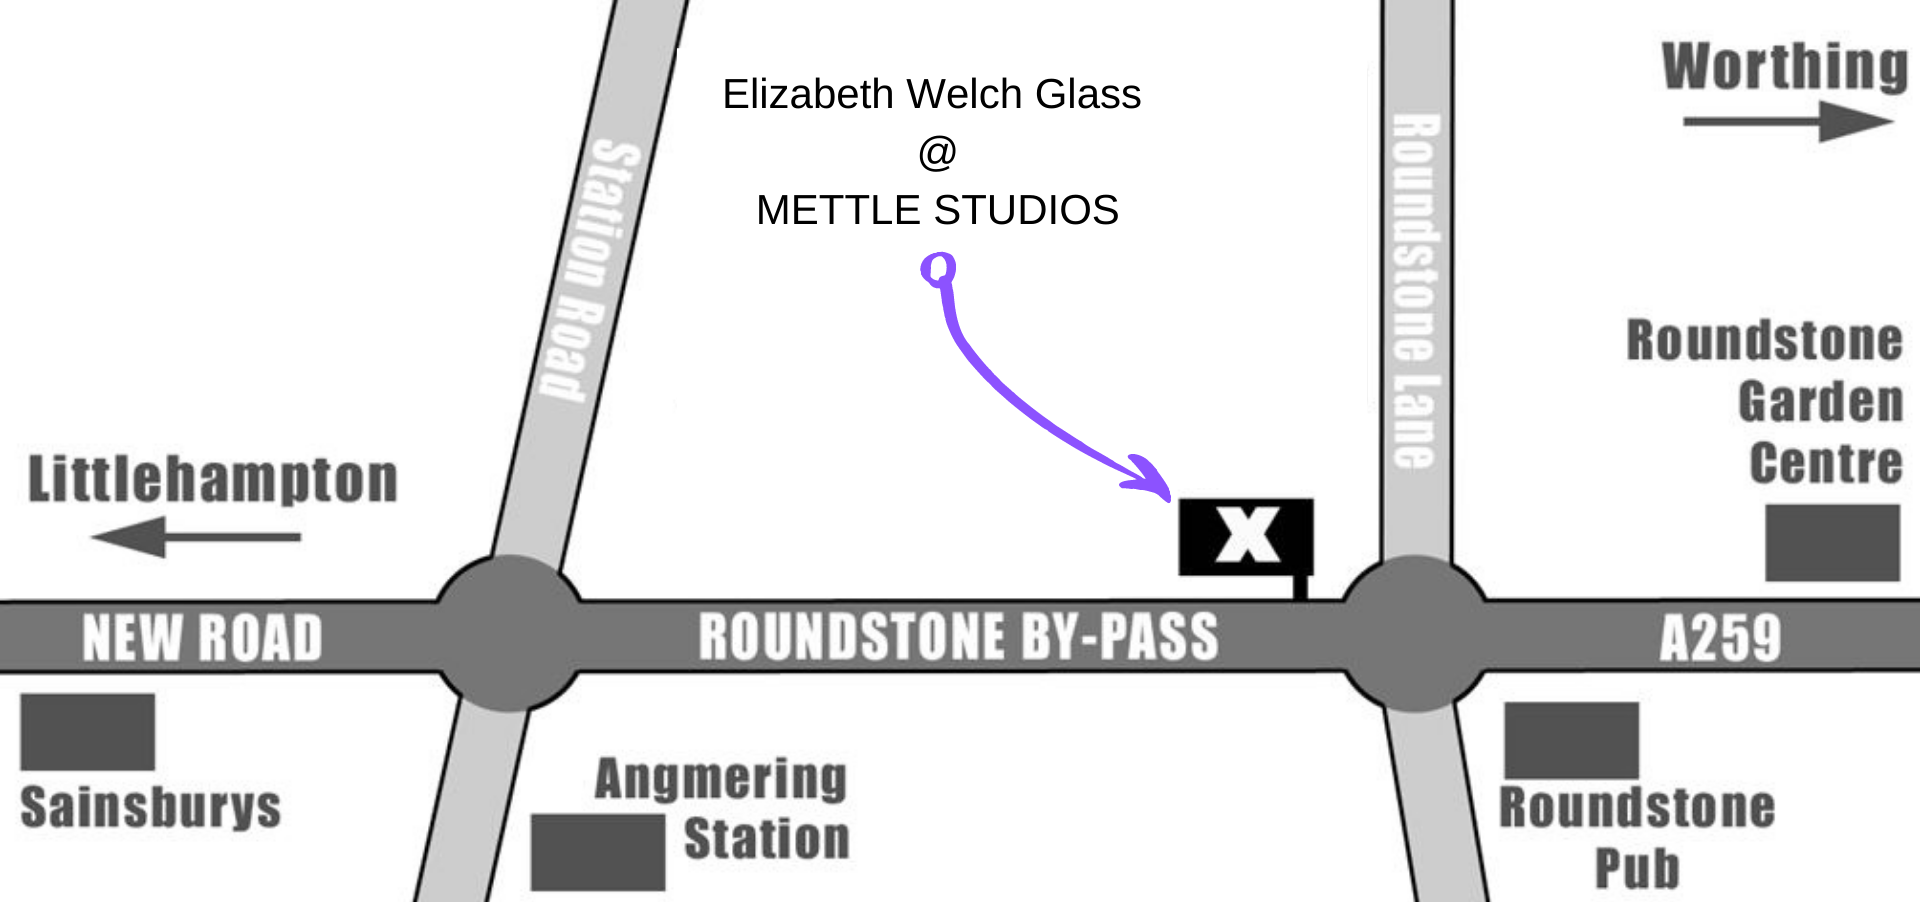 Elizabeth Welch Glass @ METTLE STUDIOS